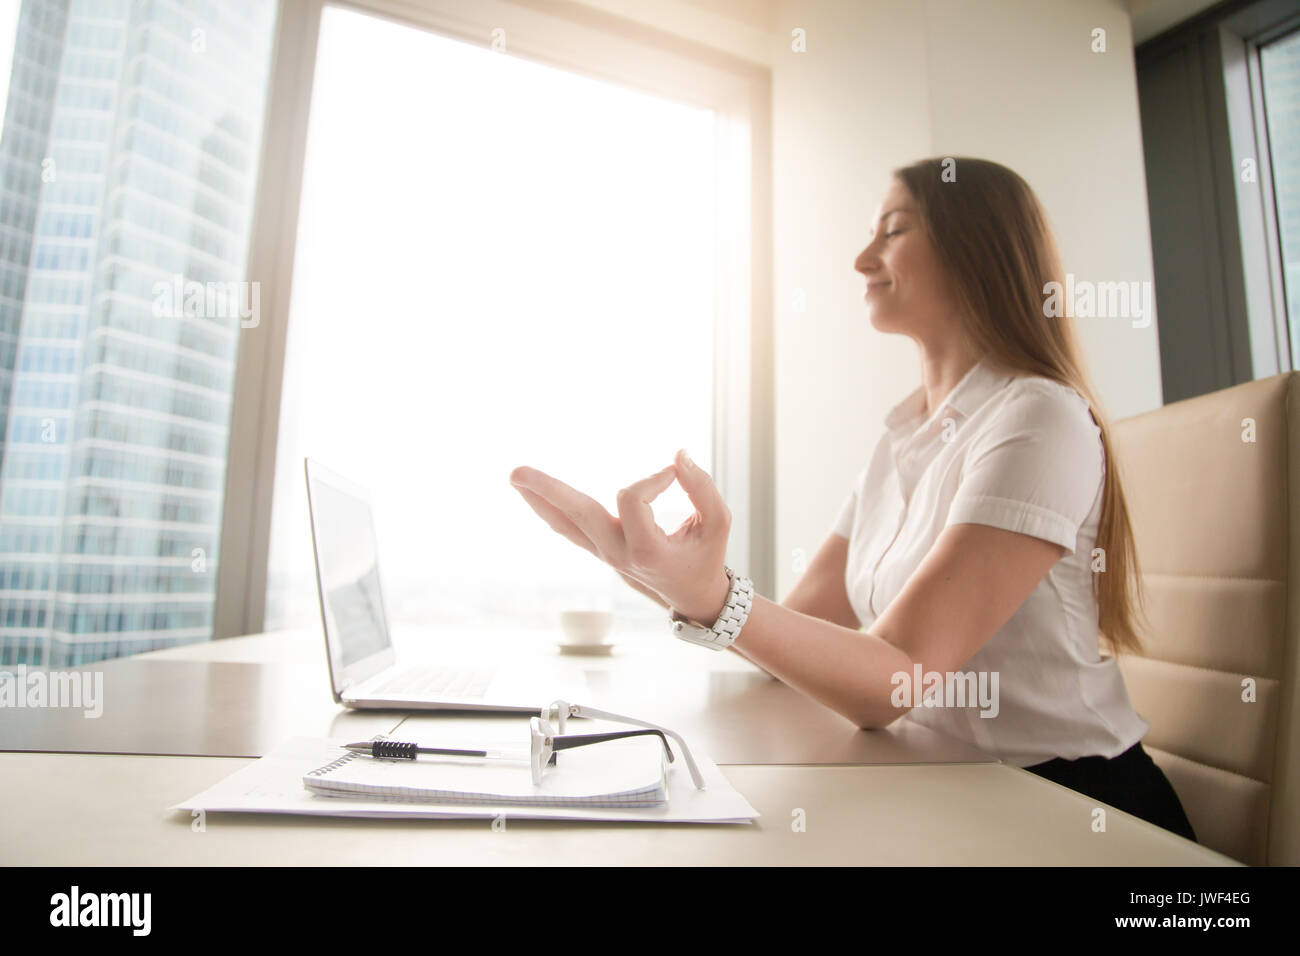 Calm peaceful businesswoman practicing yoga at work, meditating  - Stock Image